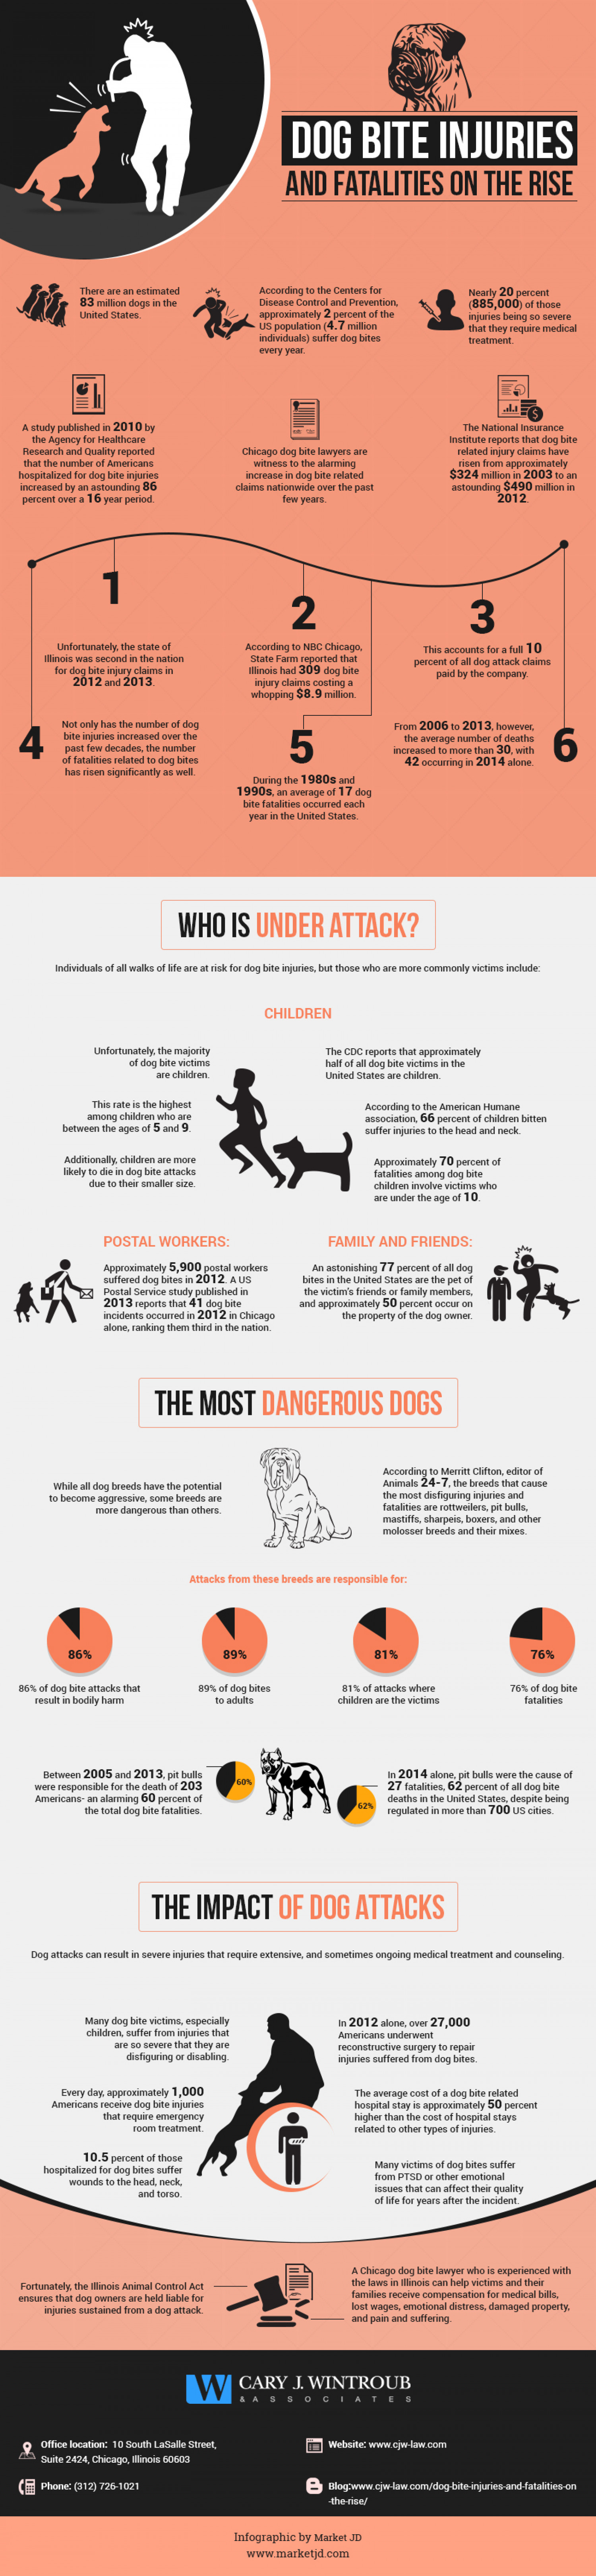 Dog Bite Injuries and Fatalities on the Rise Infographic